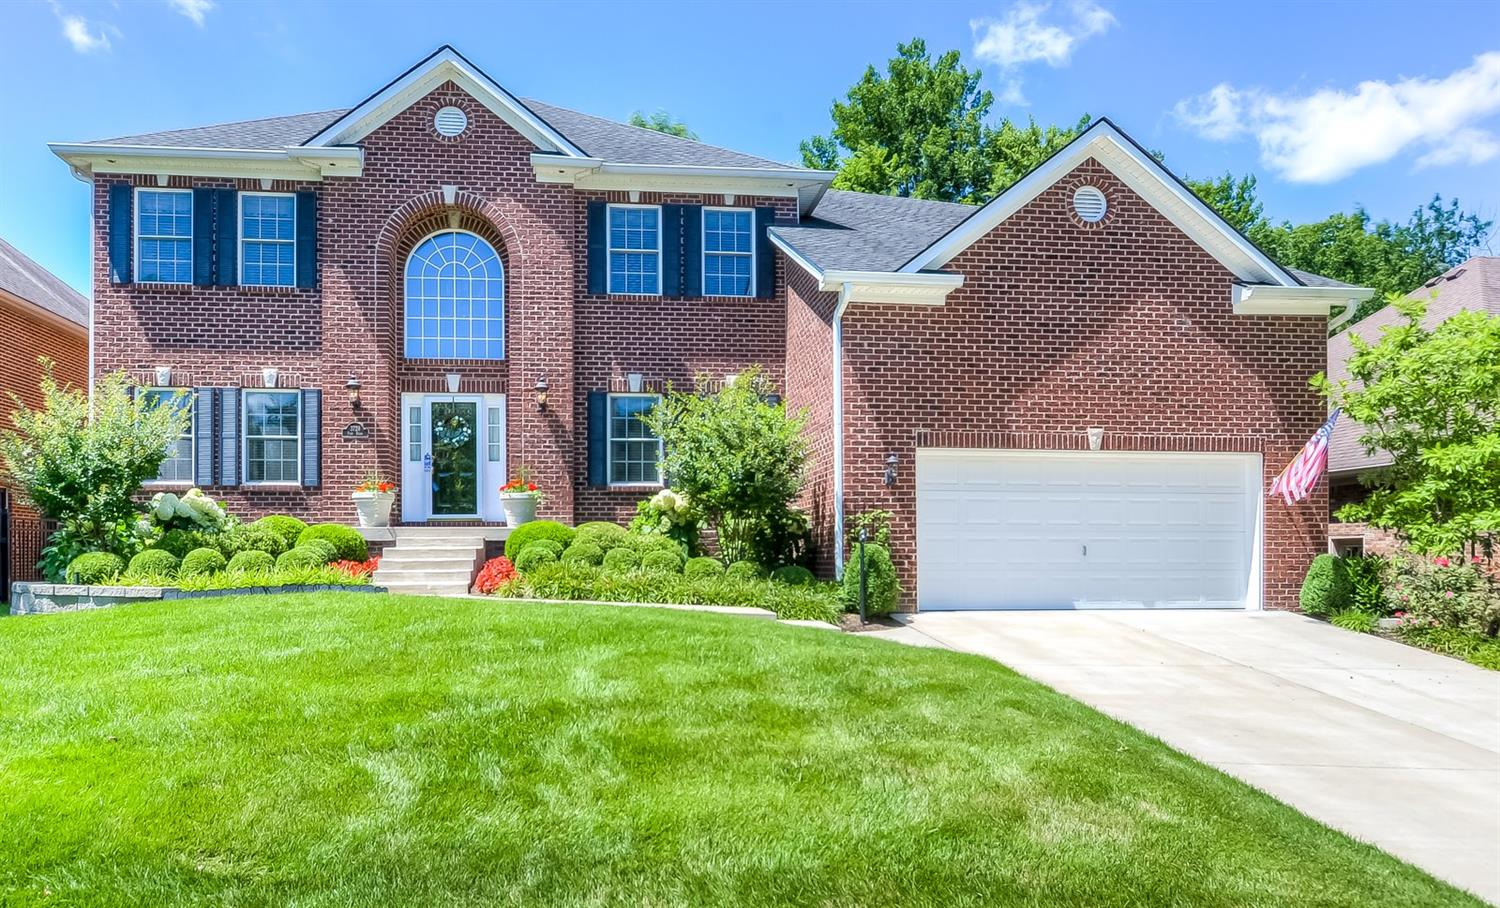 3728 Park Ridge Lane, Lexington, KY 40509